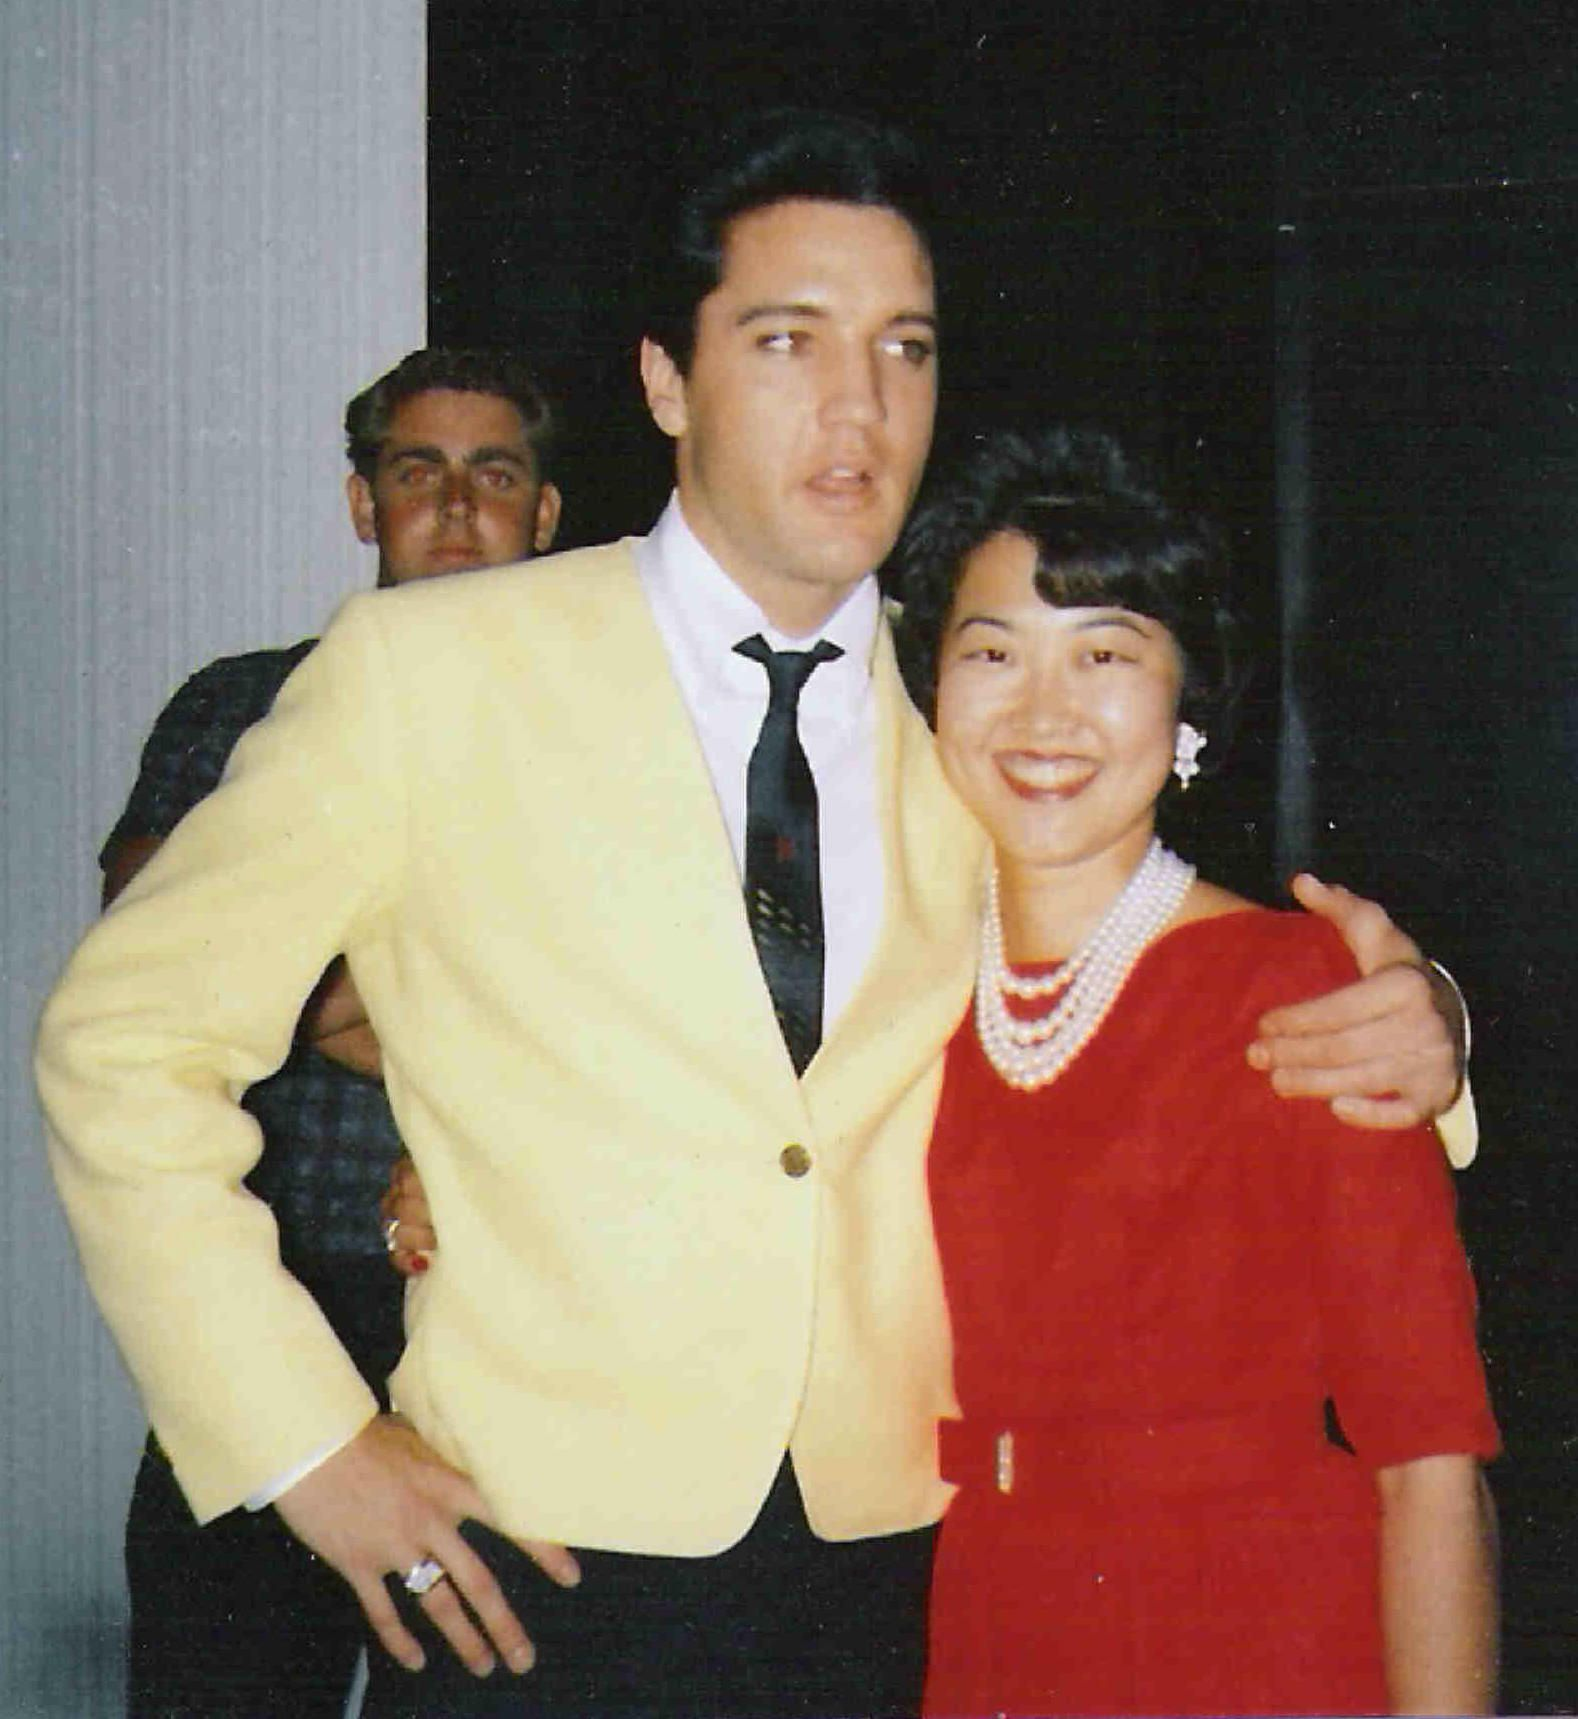 Elvis & Miriam at 525 Perugia Way, Bel Aire,CA 8-1963. He just arrived home after a day of shooting Viva Las Vegas. Awesome man with a heart as big as this universe. What megastar would invite a perfect stranger who knocked on his door in 7-1963 to come to his parties for the rest of the week since he doesn't start shooting Viva Las Vegas until the following week.